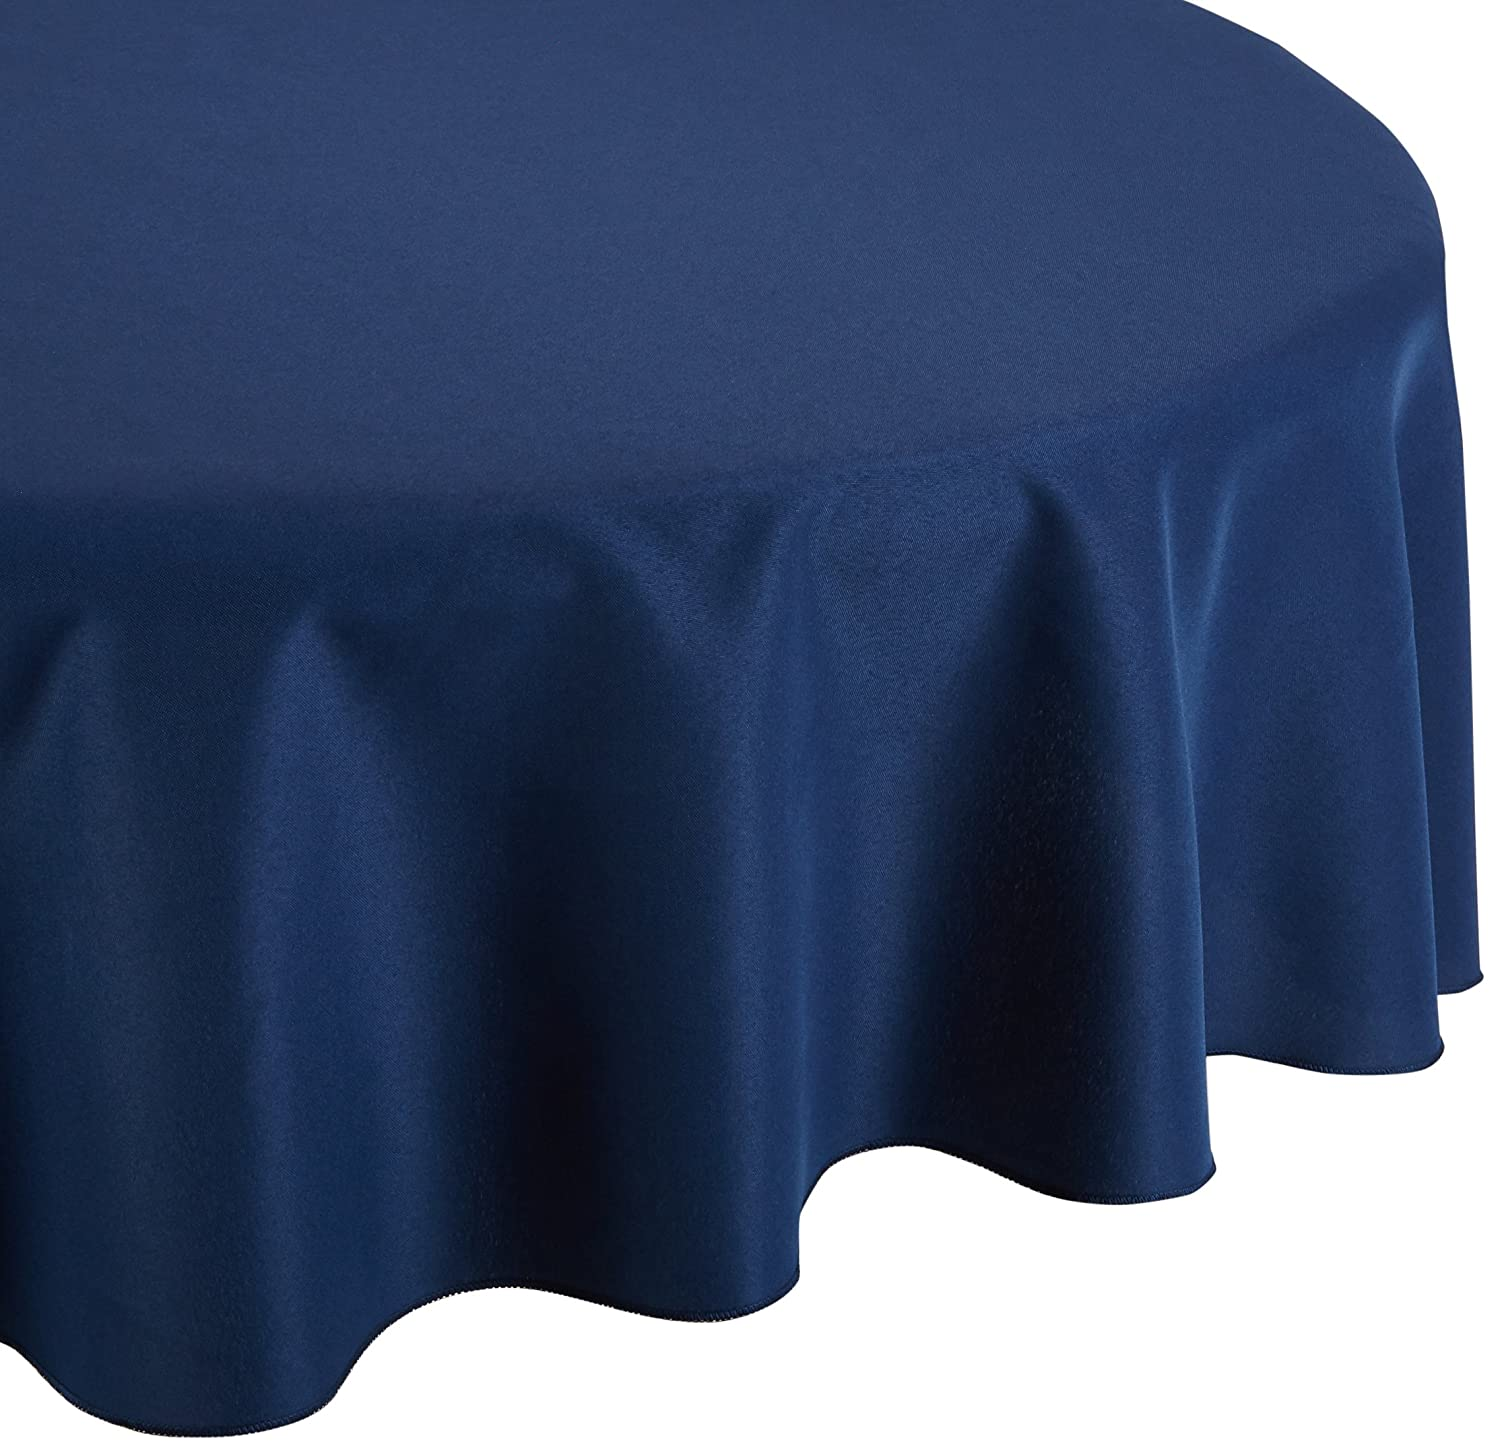 Amazon.com: LinenTablecloth 70 Inch Round Polyester Tablecloth Navy Blue:  Home U0026 Kitchen